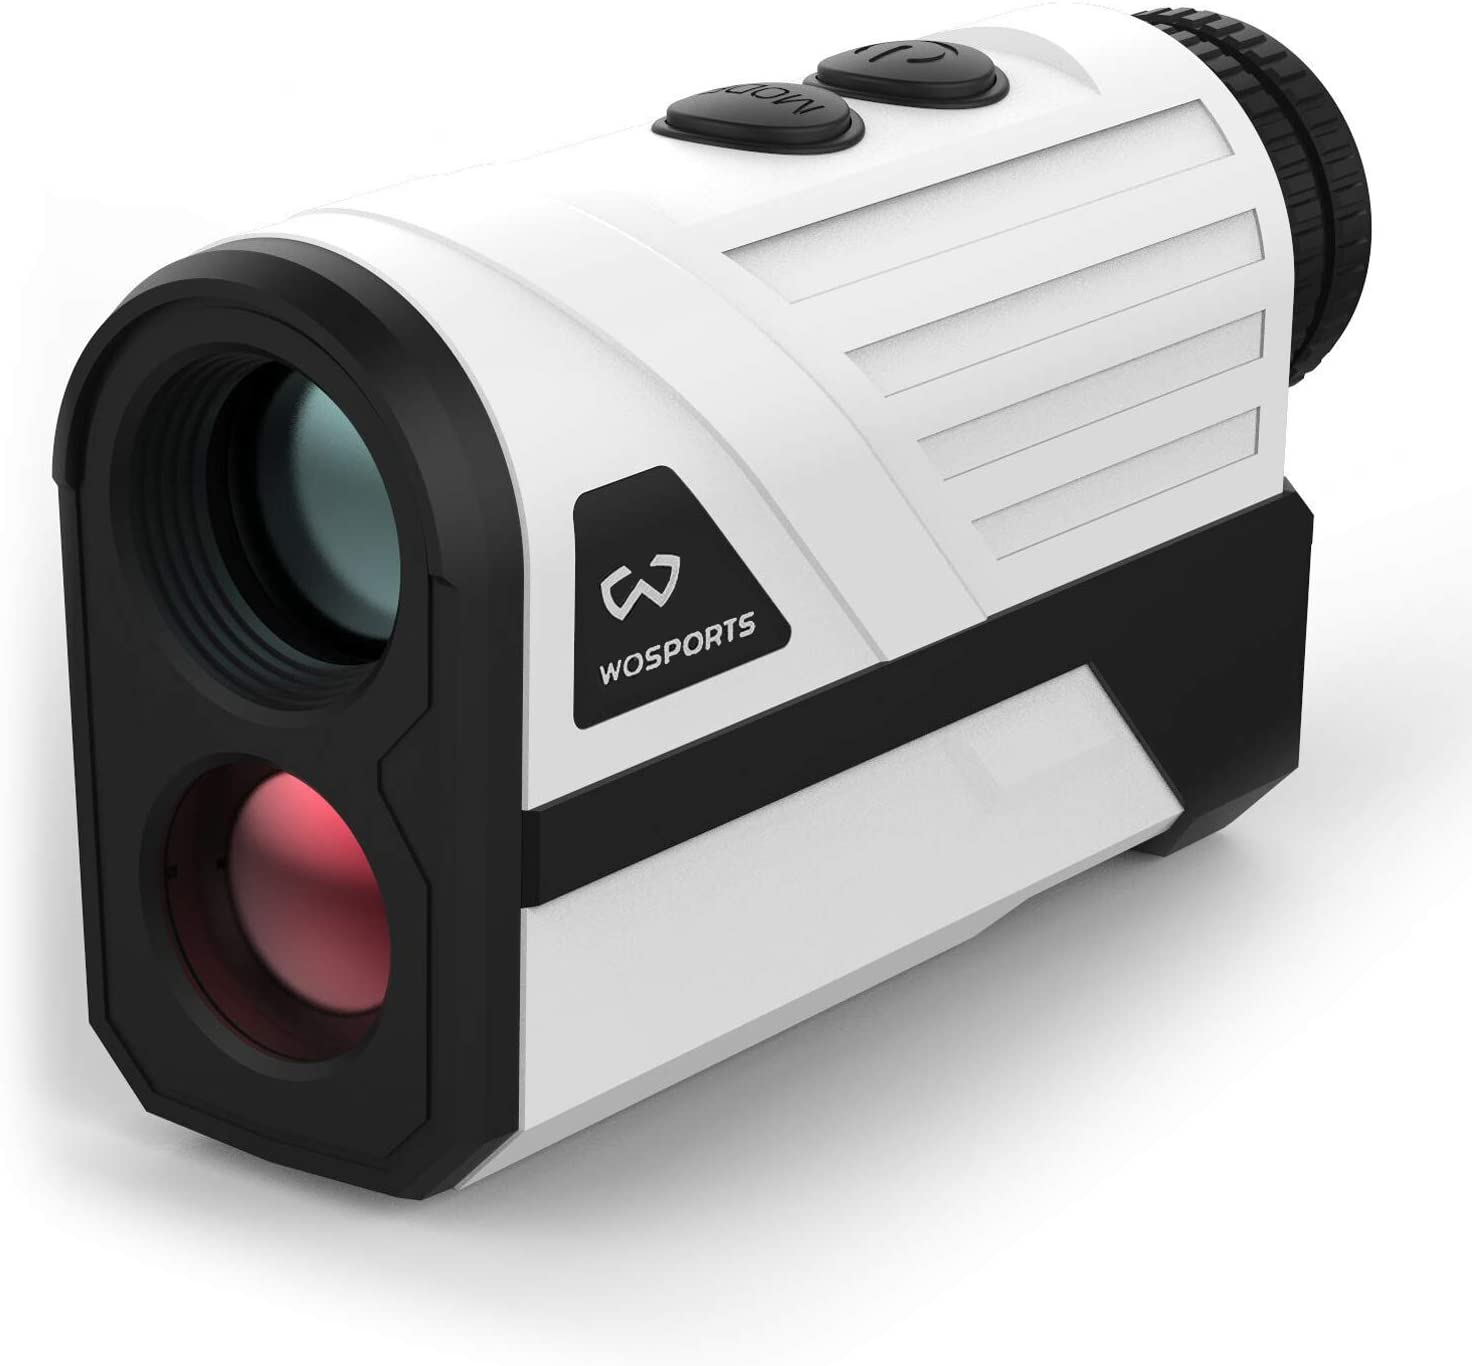 Wosports Golf Rangefinder, 650 Yards Laser Distance Finder with Slope, Flag-Lock with Vibration Distance/Speed/Angle Measurement, Upgraded Battery Cover